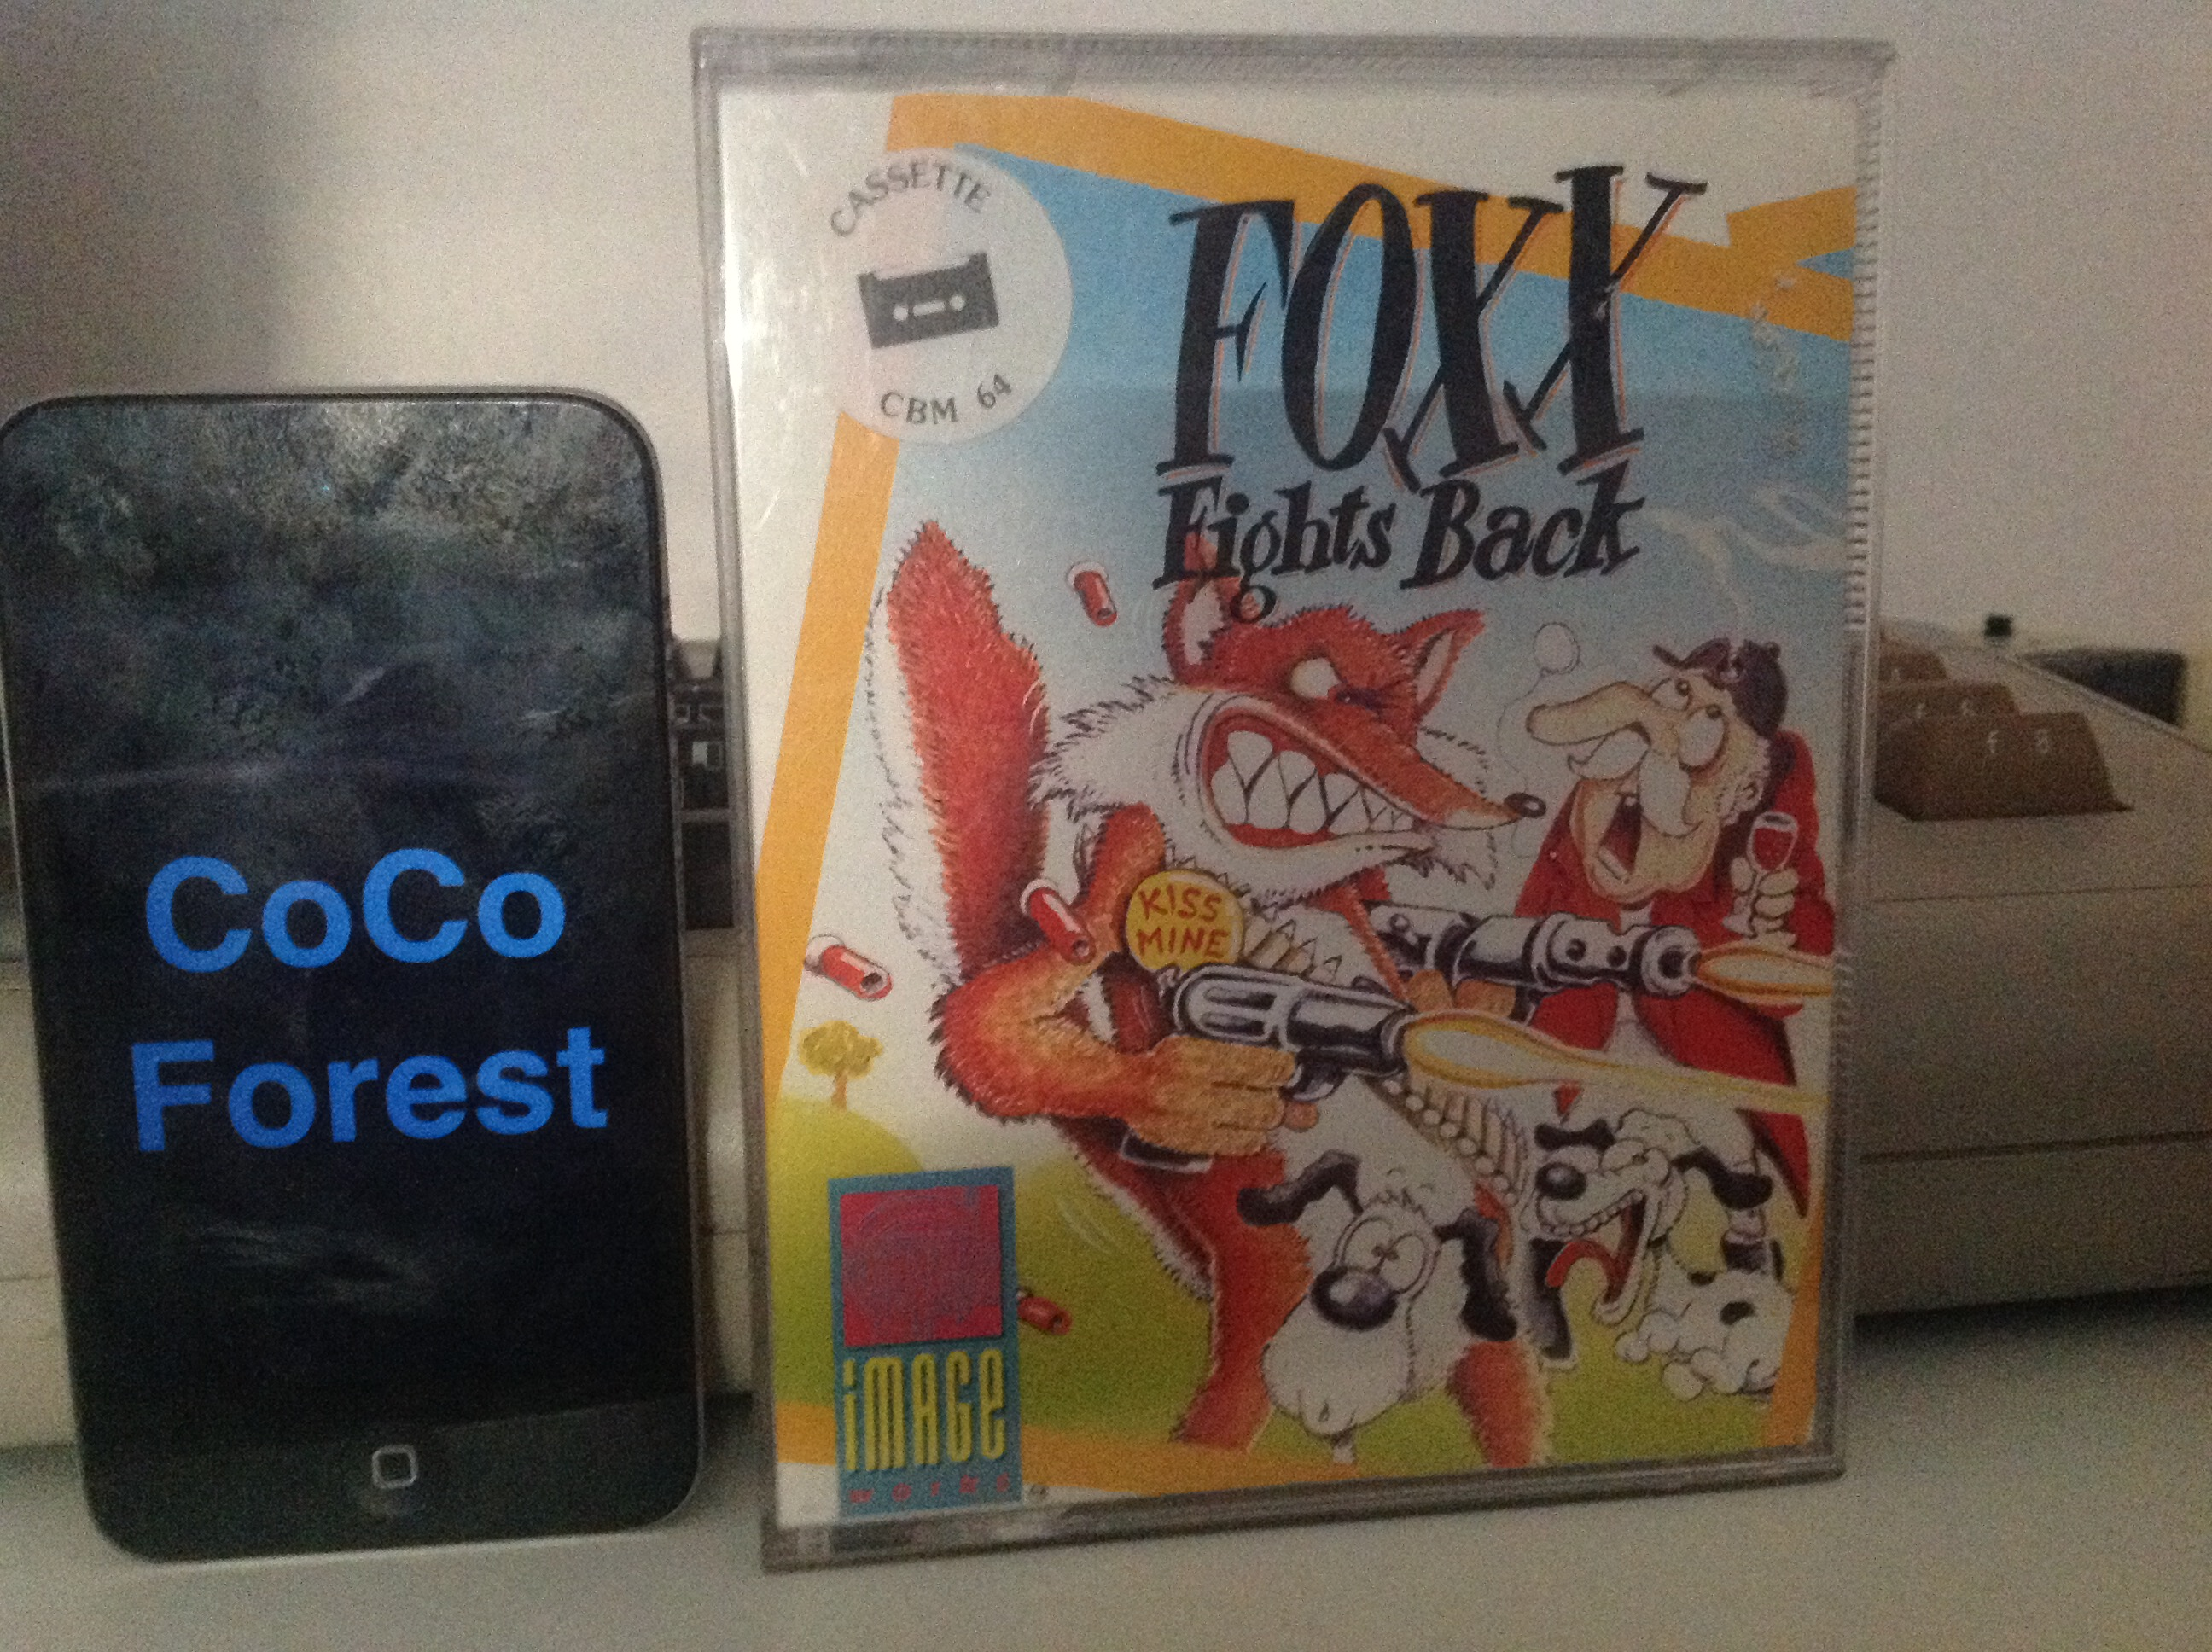 CoCoForest: Fox Fights Back (Commodore 64) 8,736 points on 2015-12-09 09:11:43